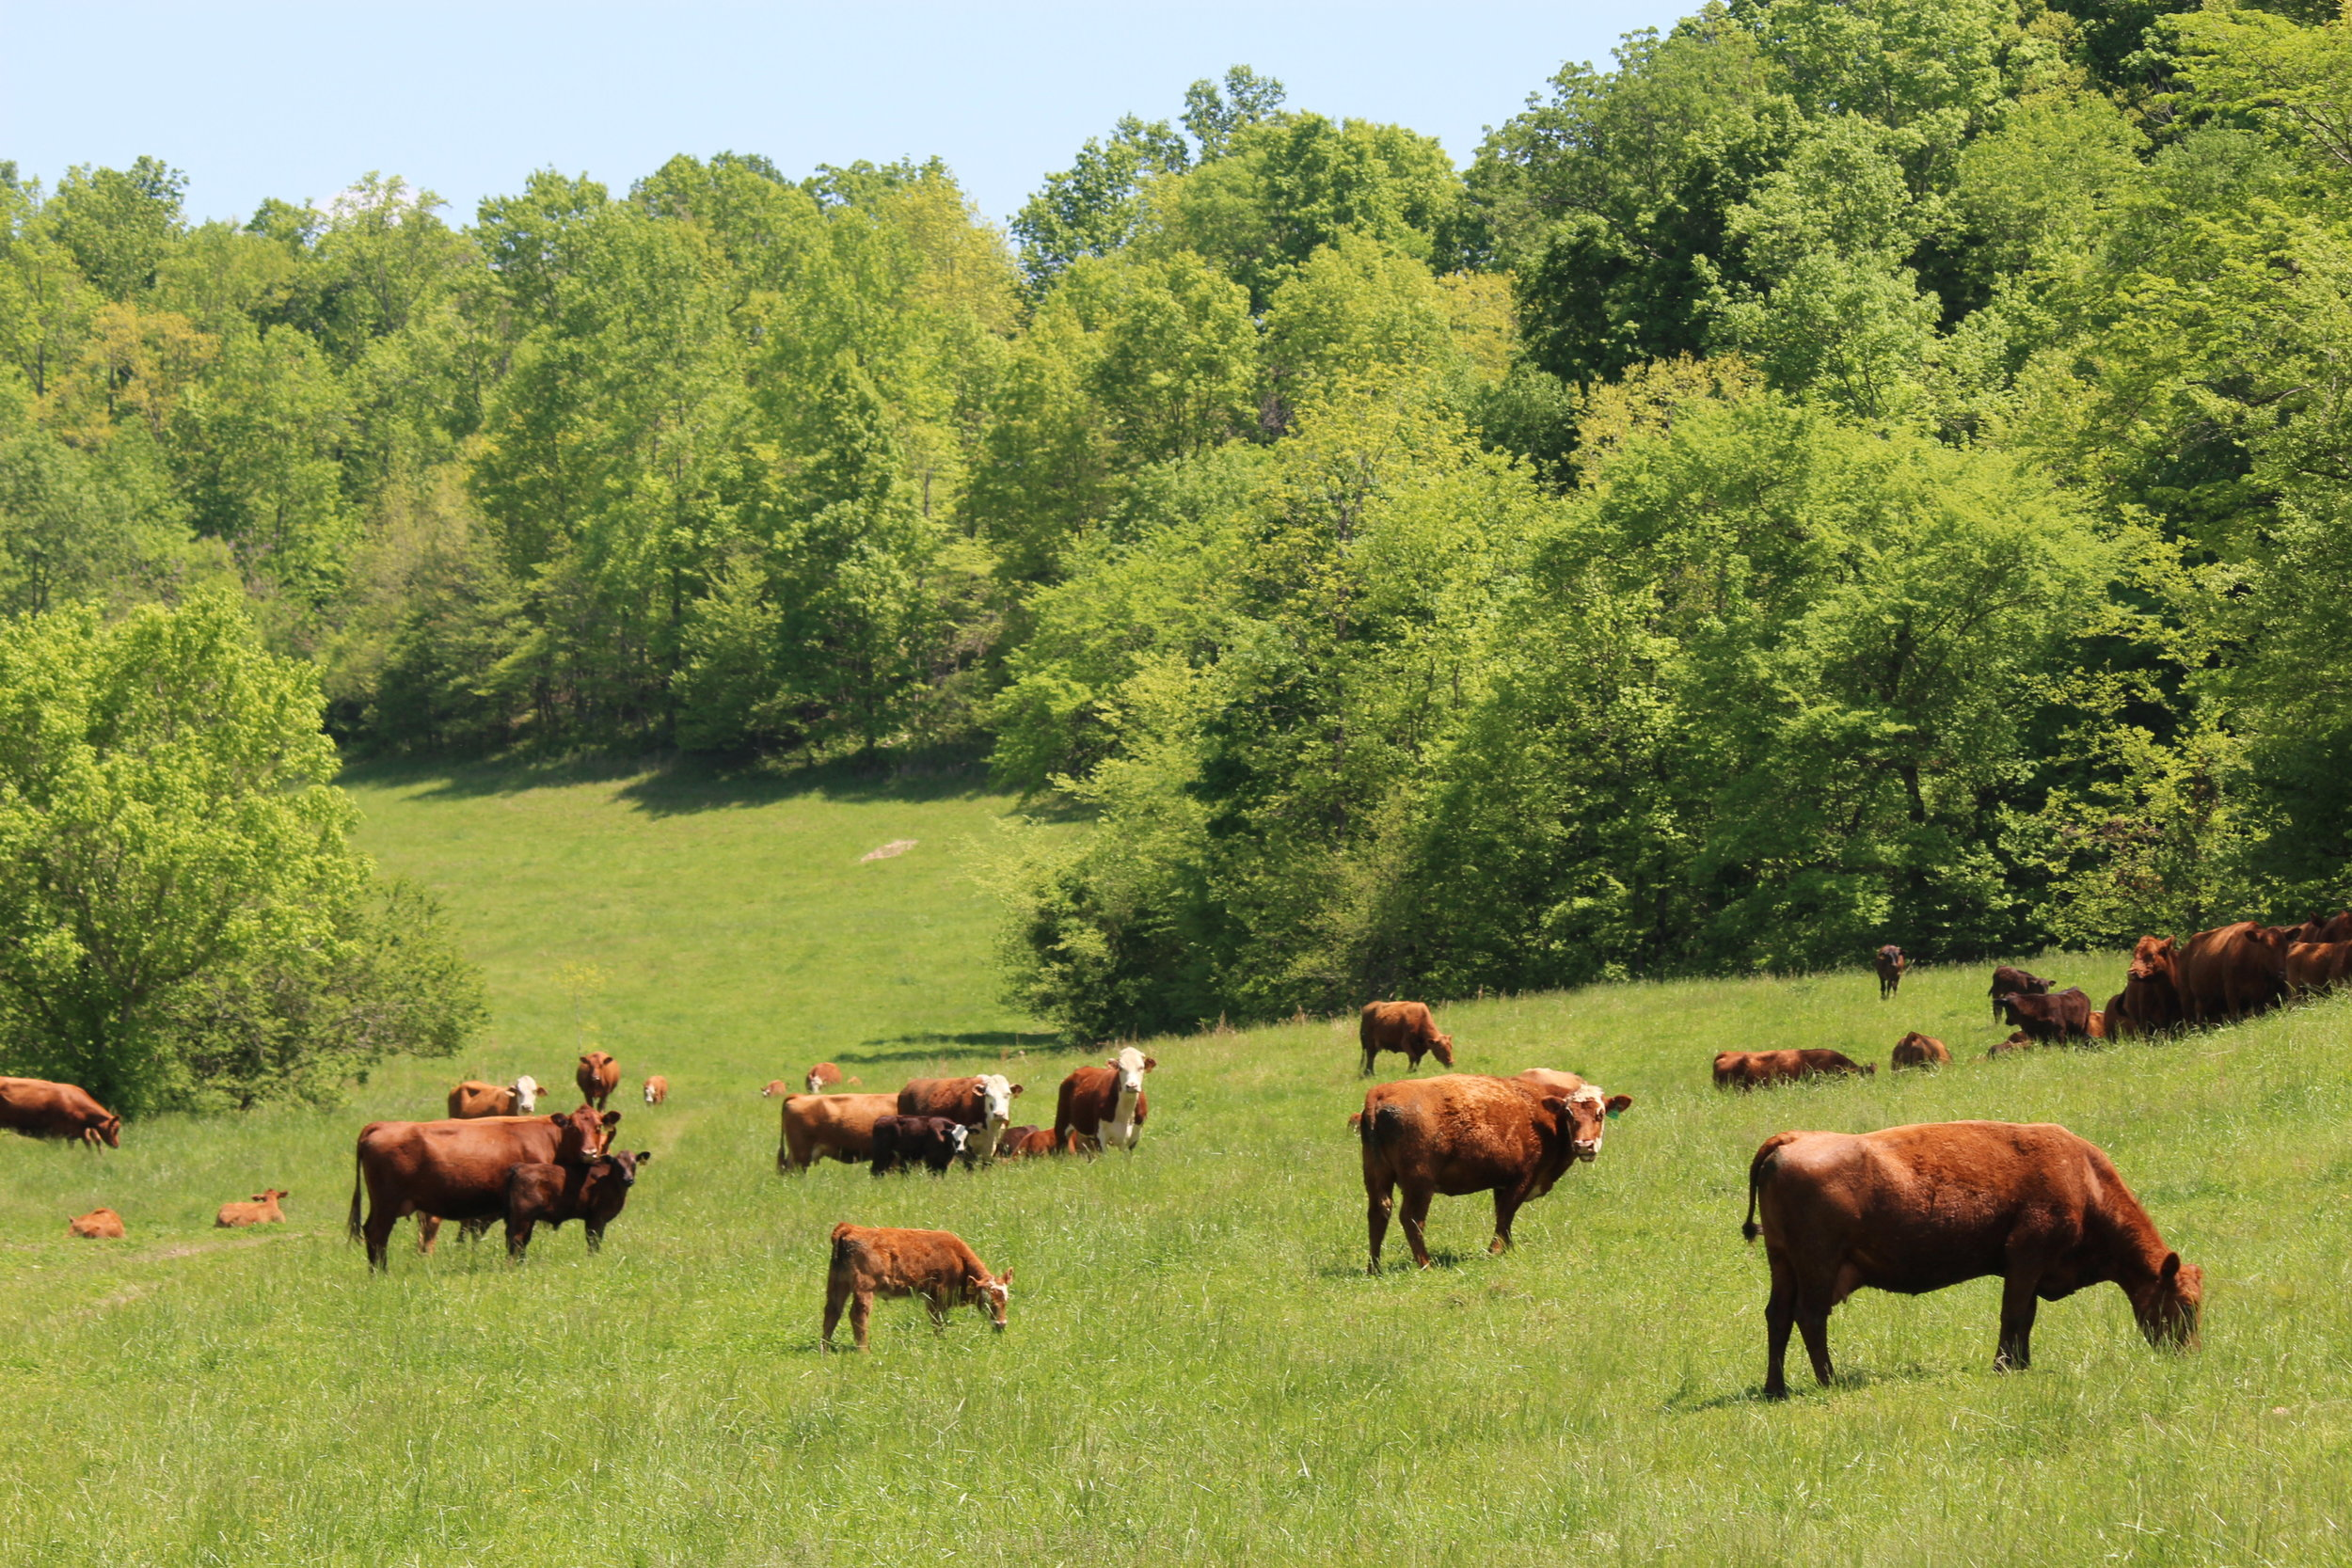 What we offer - ON PASTURE: Our cattle are raised on lush green pastures in Giles County, Tennessee. Grain-finished beef from our farm is not the same as what comes from concentrated feedlot operations. We care for our animals by letting them graze for the vast majority of their lives before finishing on homegrown grains in friendly and humane conditions. We also cooperate with other local farmers for much of our hay and feed needs.Pasture-raised, grain-finished cows from small-scale, well-managed farms live healthy and enjoyable lives…creating tasty, nutrient-laden beef.